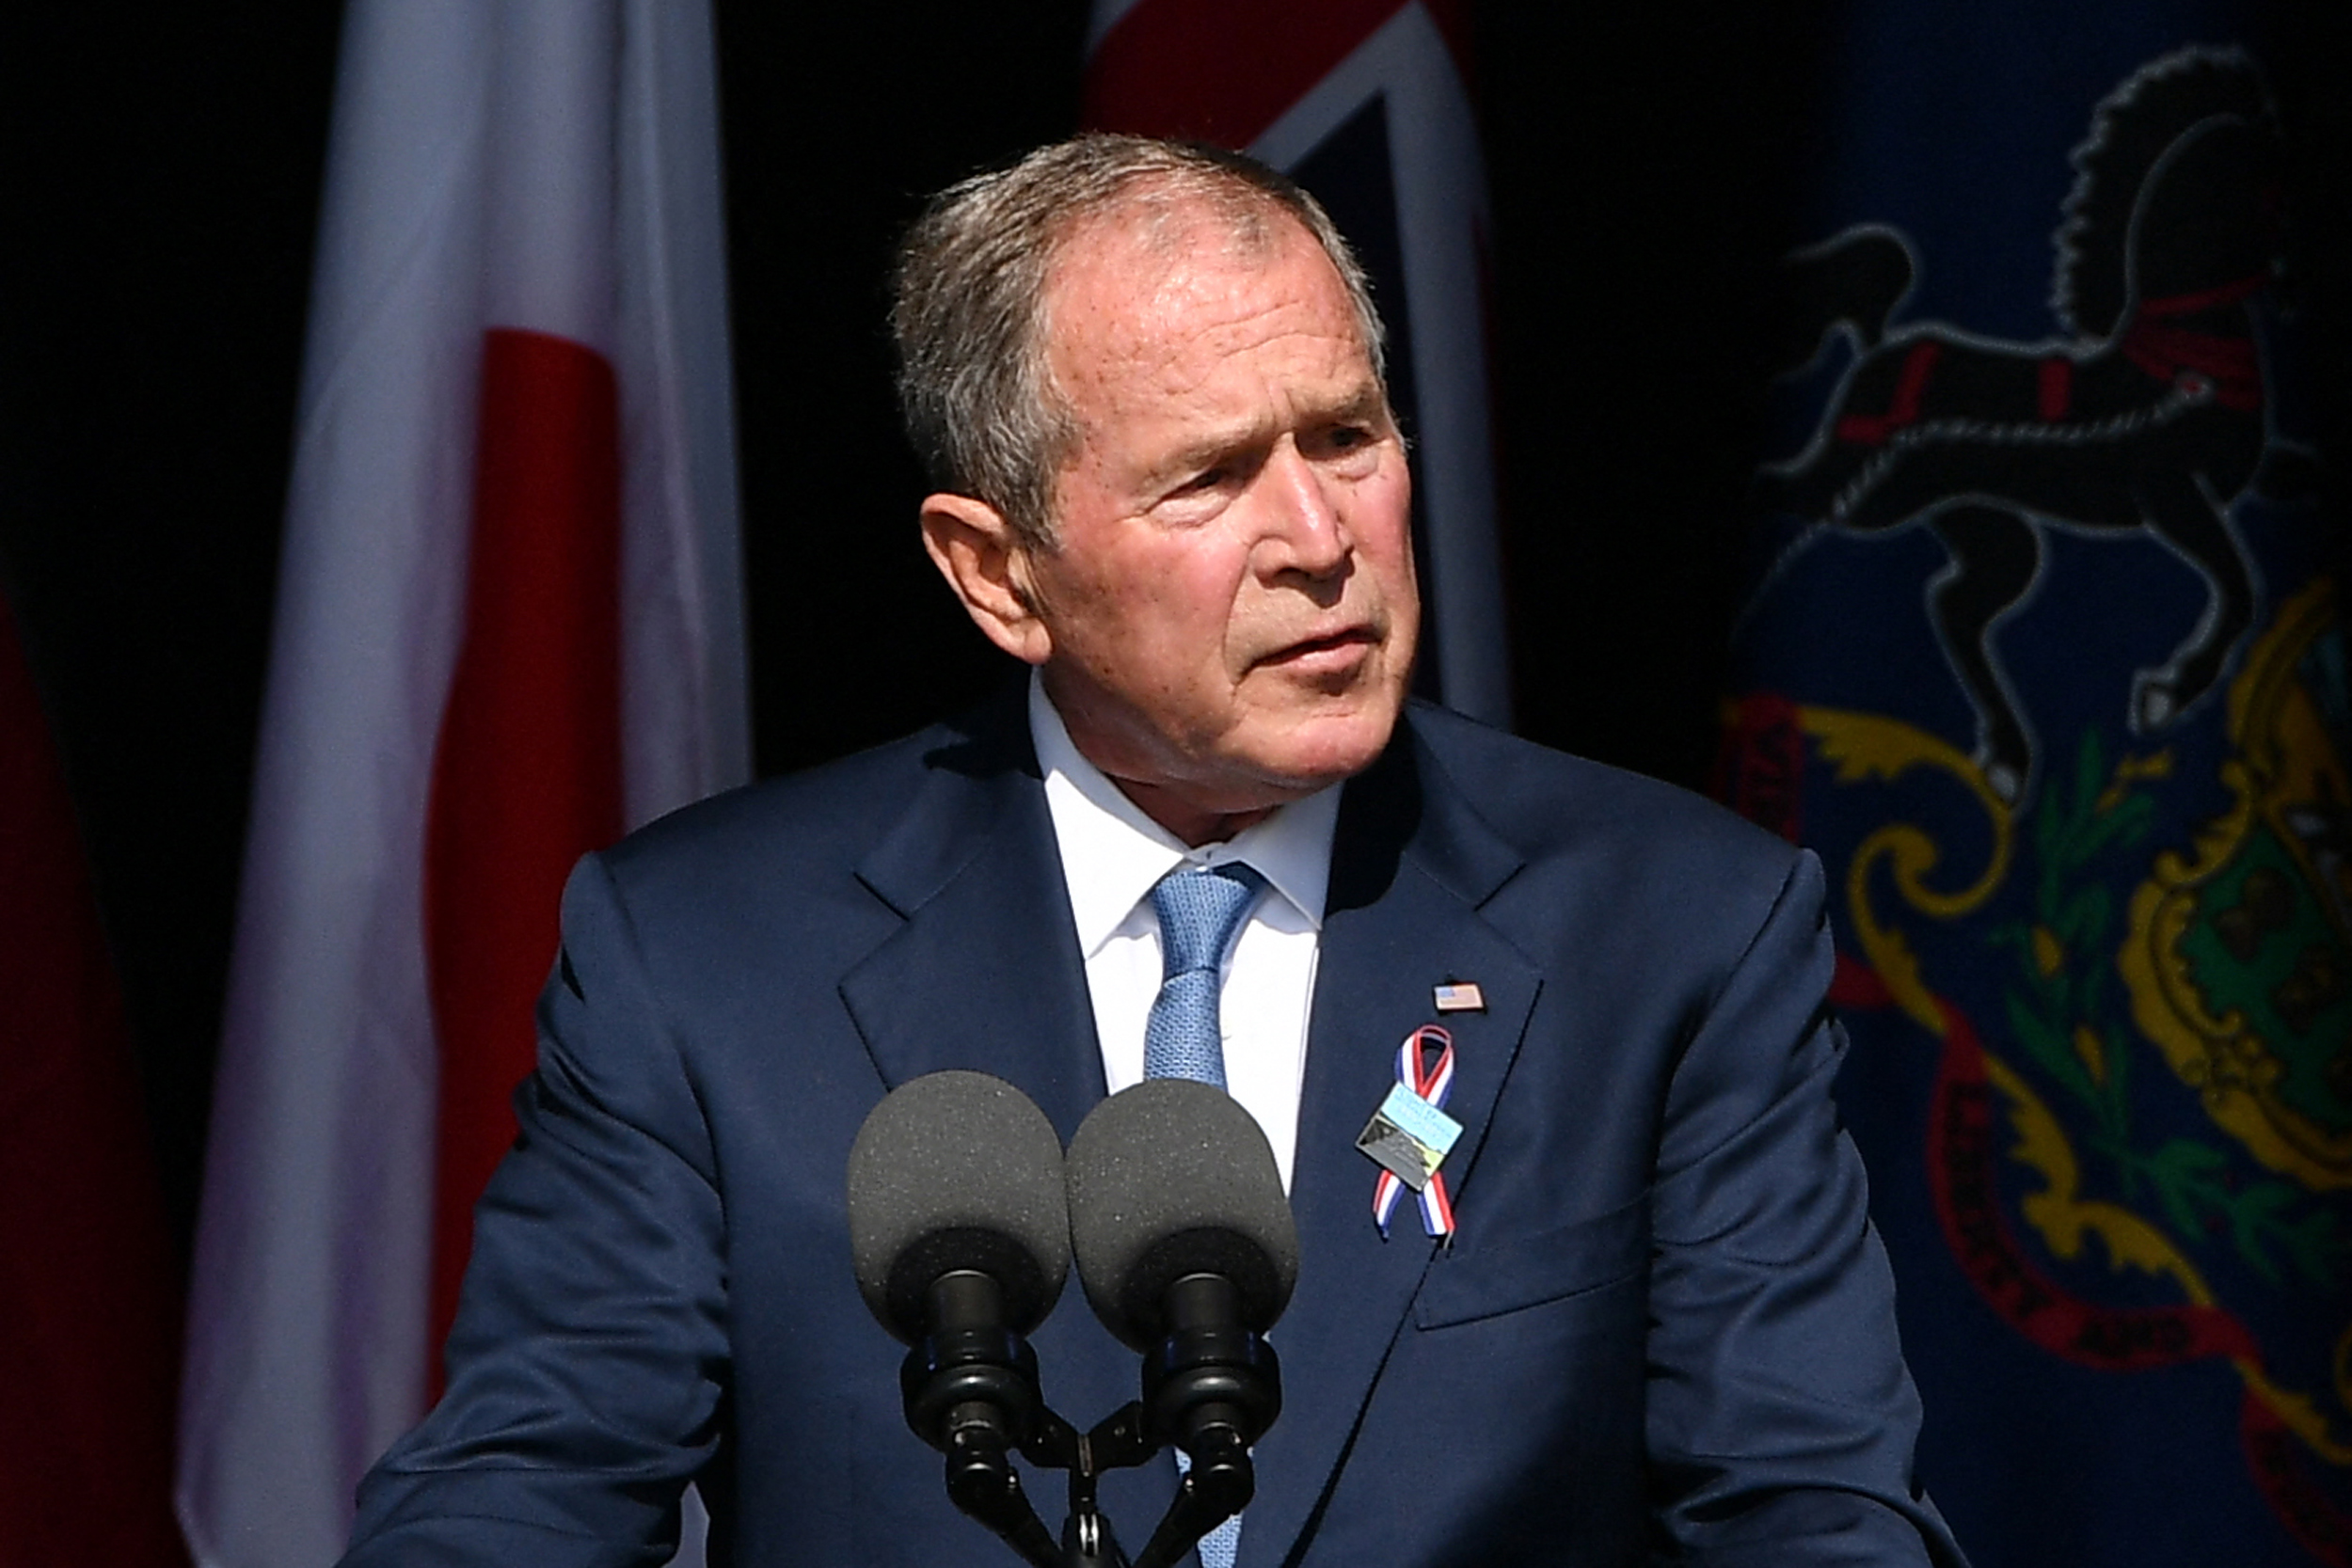 Bush calls out 'violent extremists at home' on 20th anniversary of 9/11